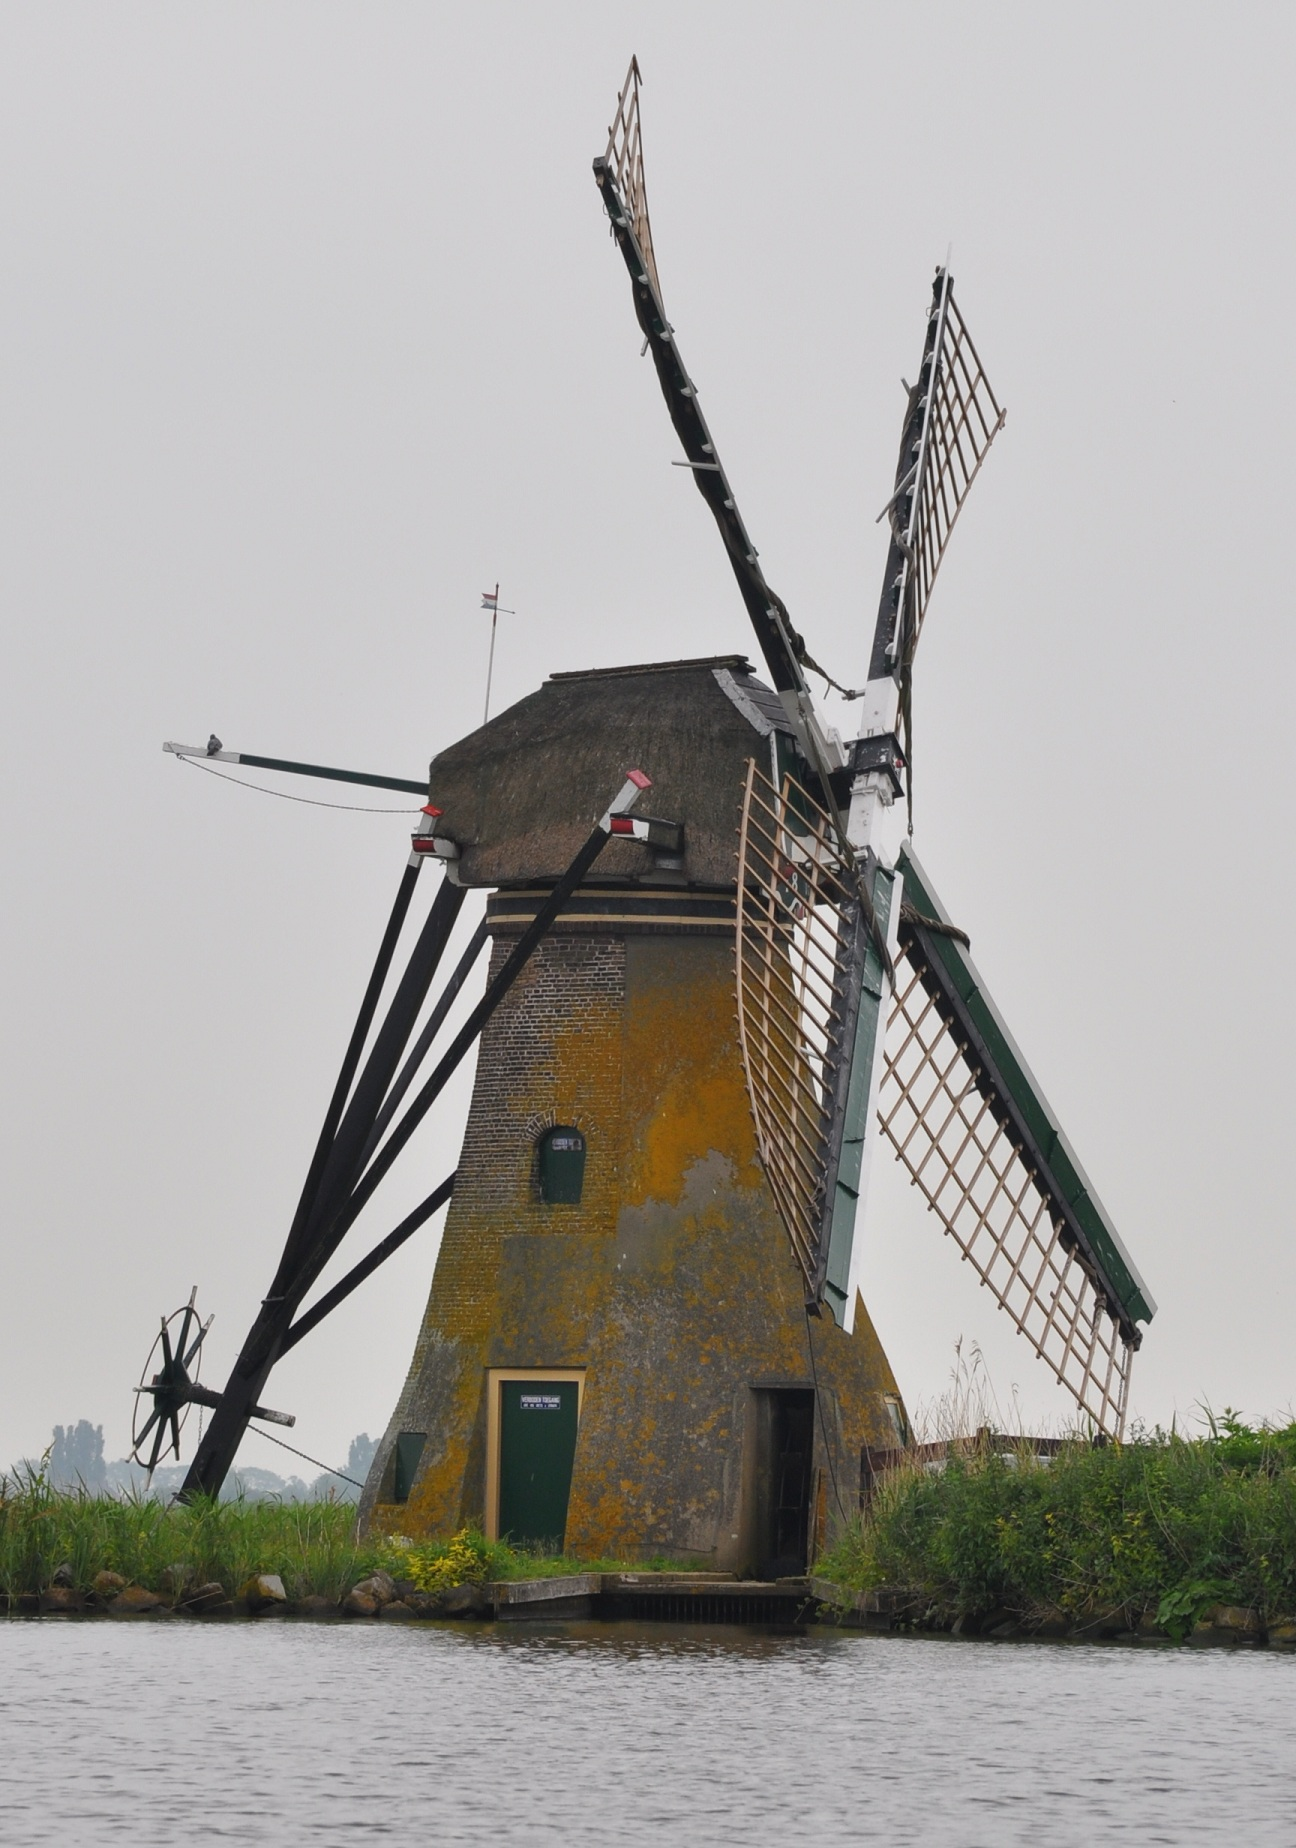 Kok Halland : FileNetherlands, Warmond, windmill De KokJPG  Wikimedia Commons